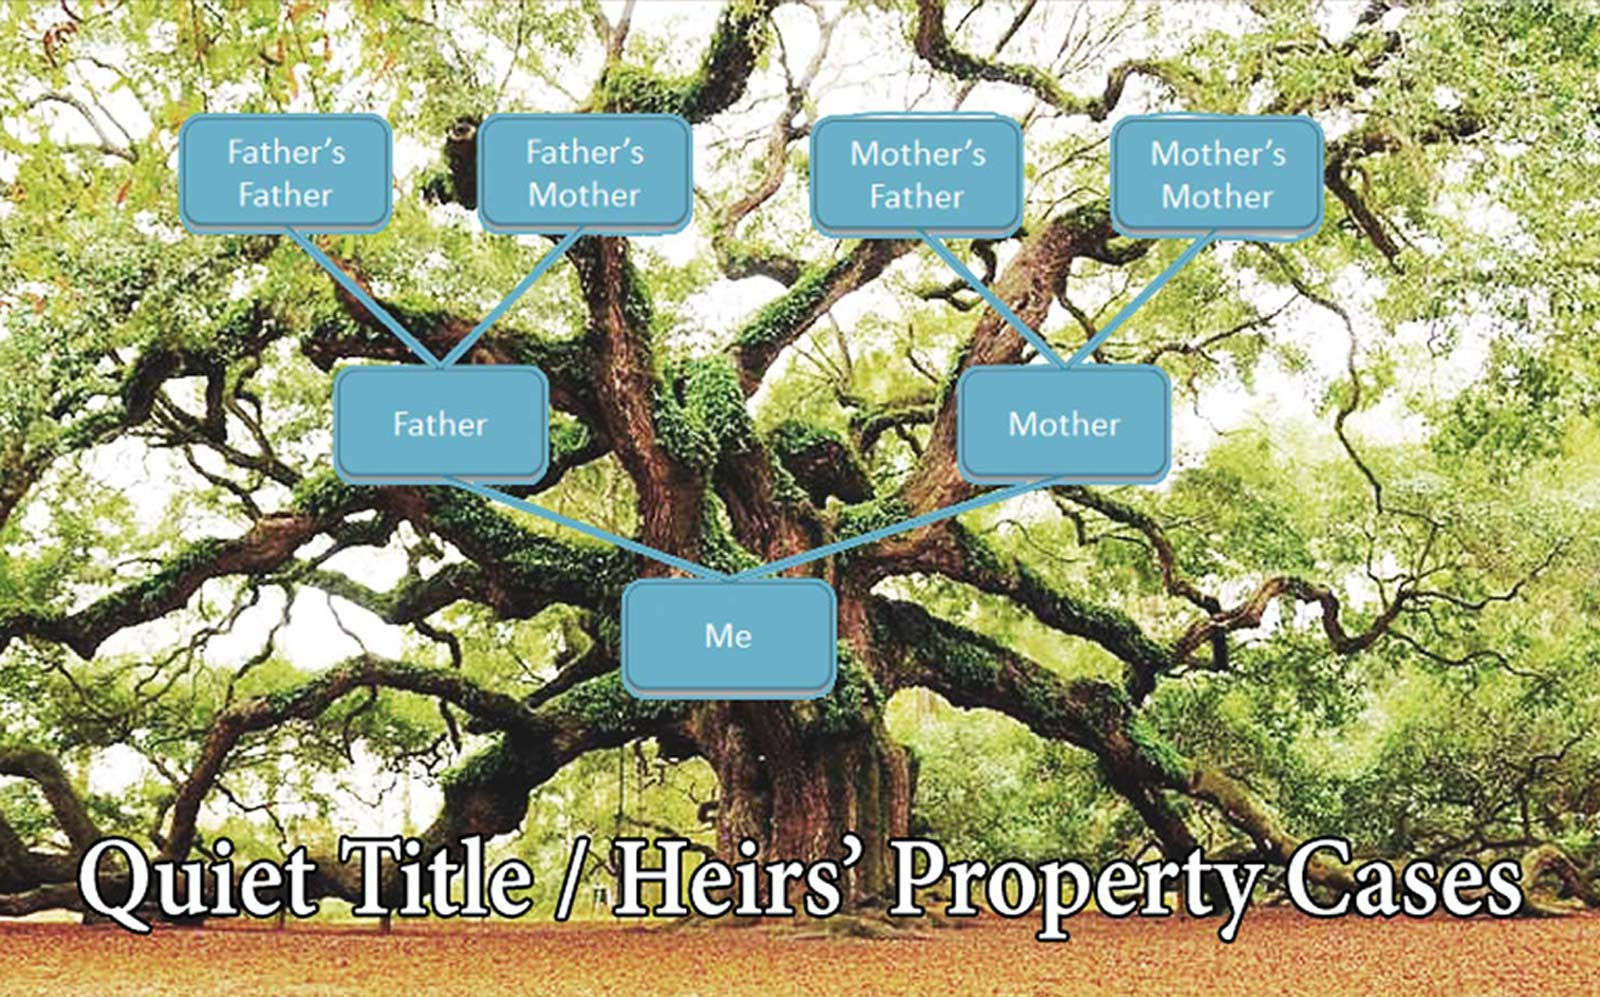 heirs-property Quiet Title/Heirs' Property | The Mason Law Firm